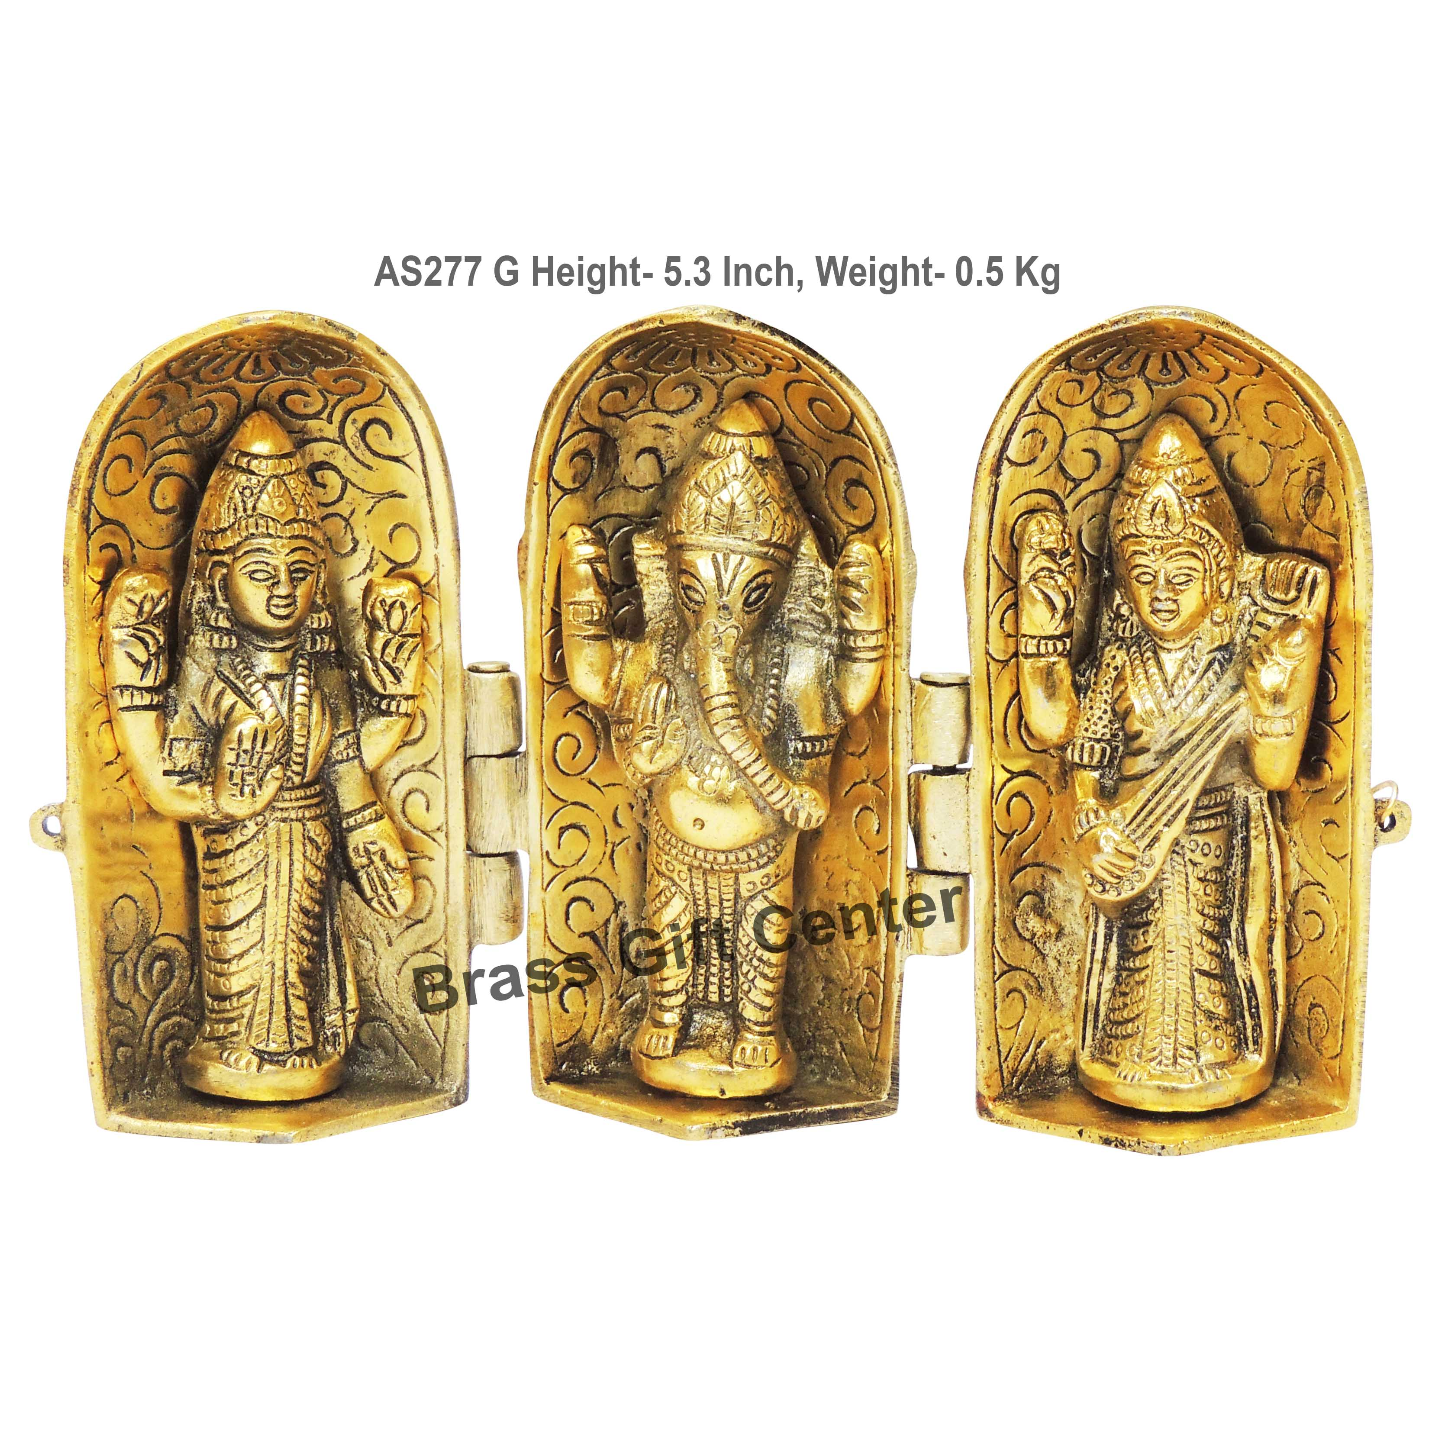 Laxmi Ganesh Saraswati Folding - 8.5*1.5*5.3 Inch  (AS277 G)